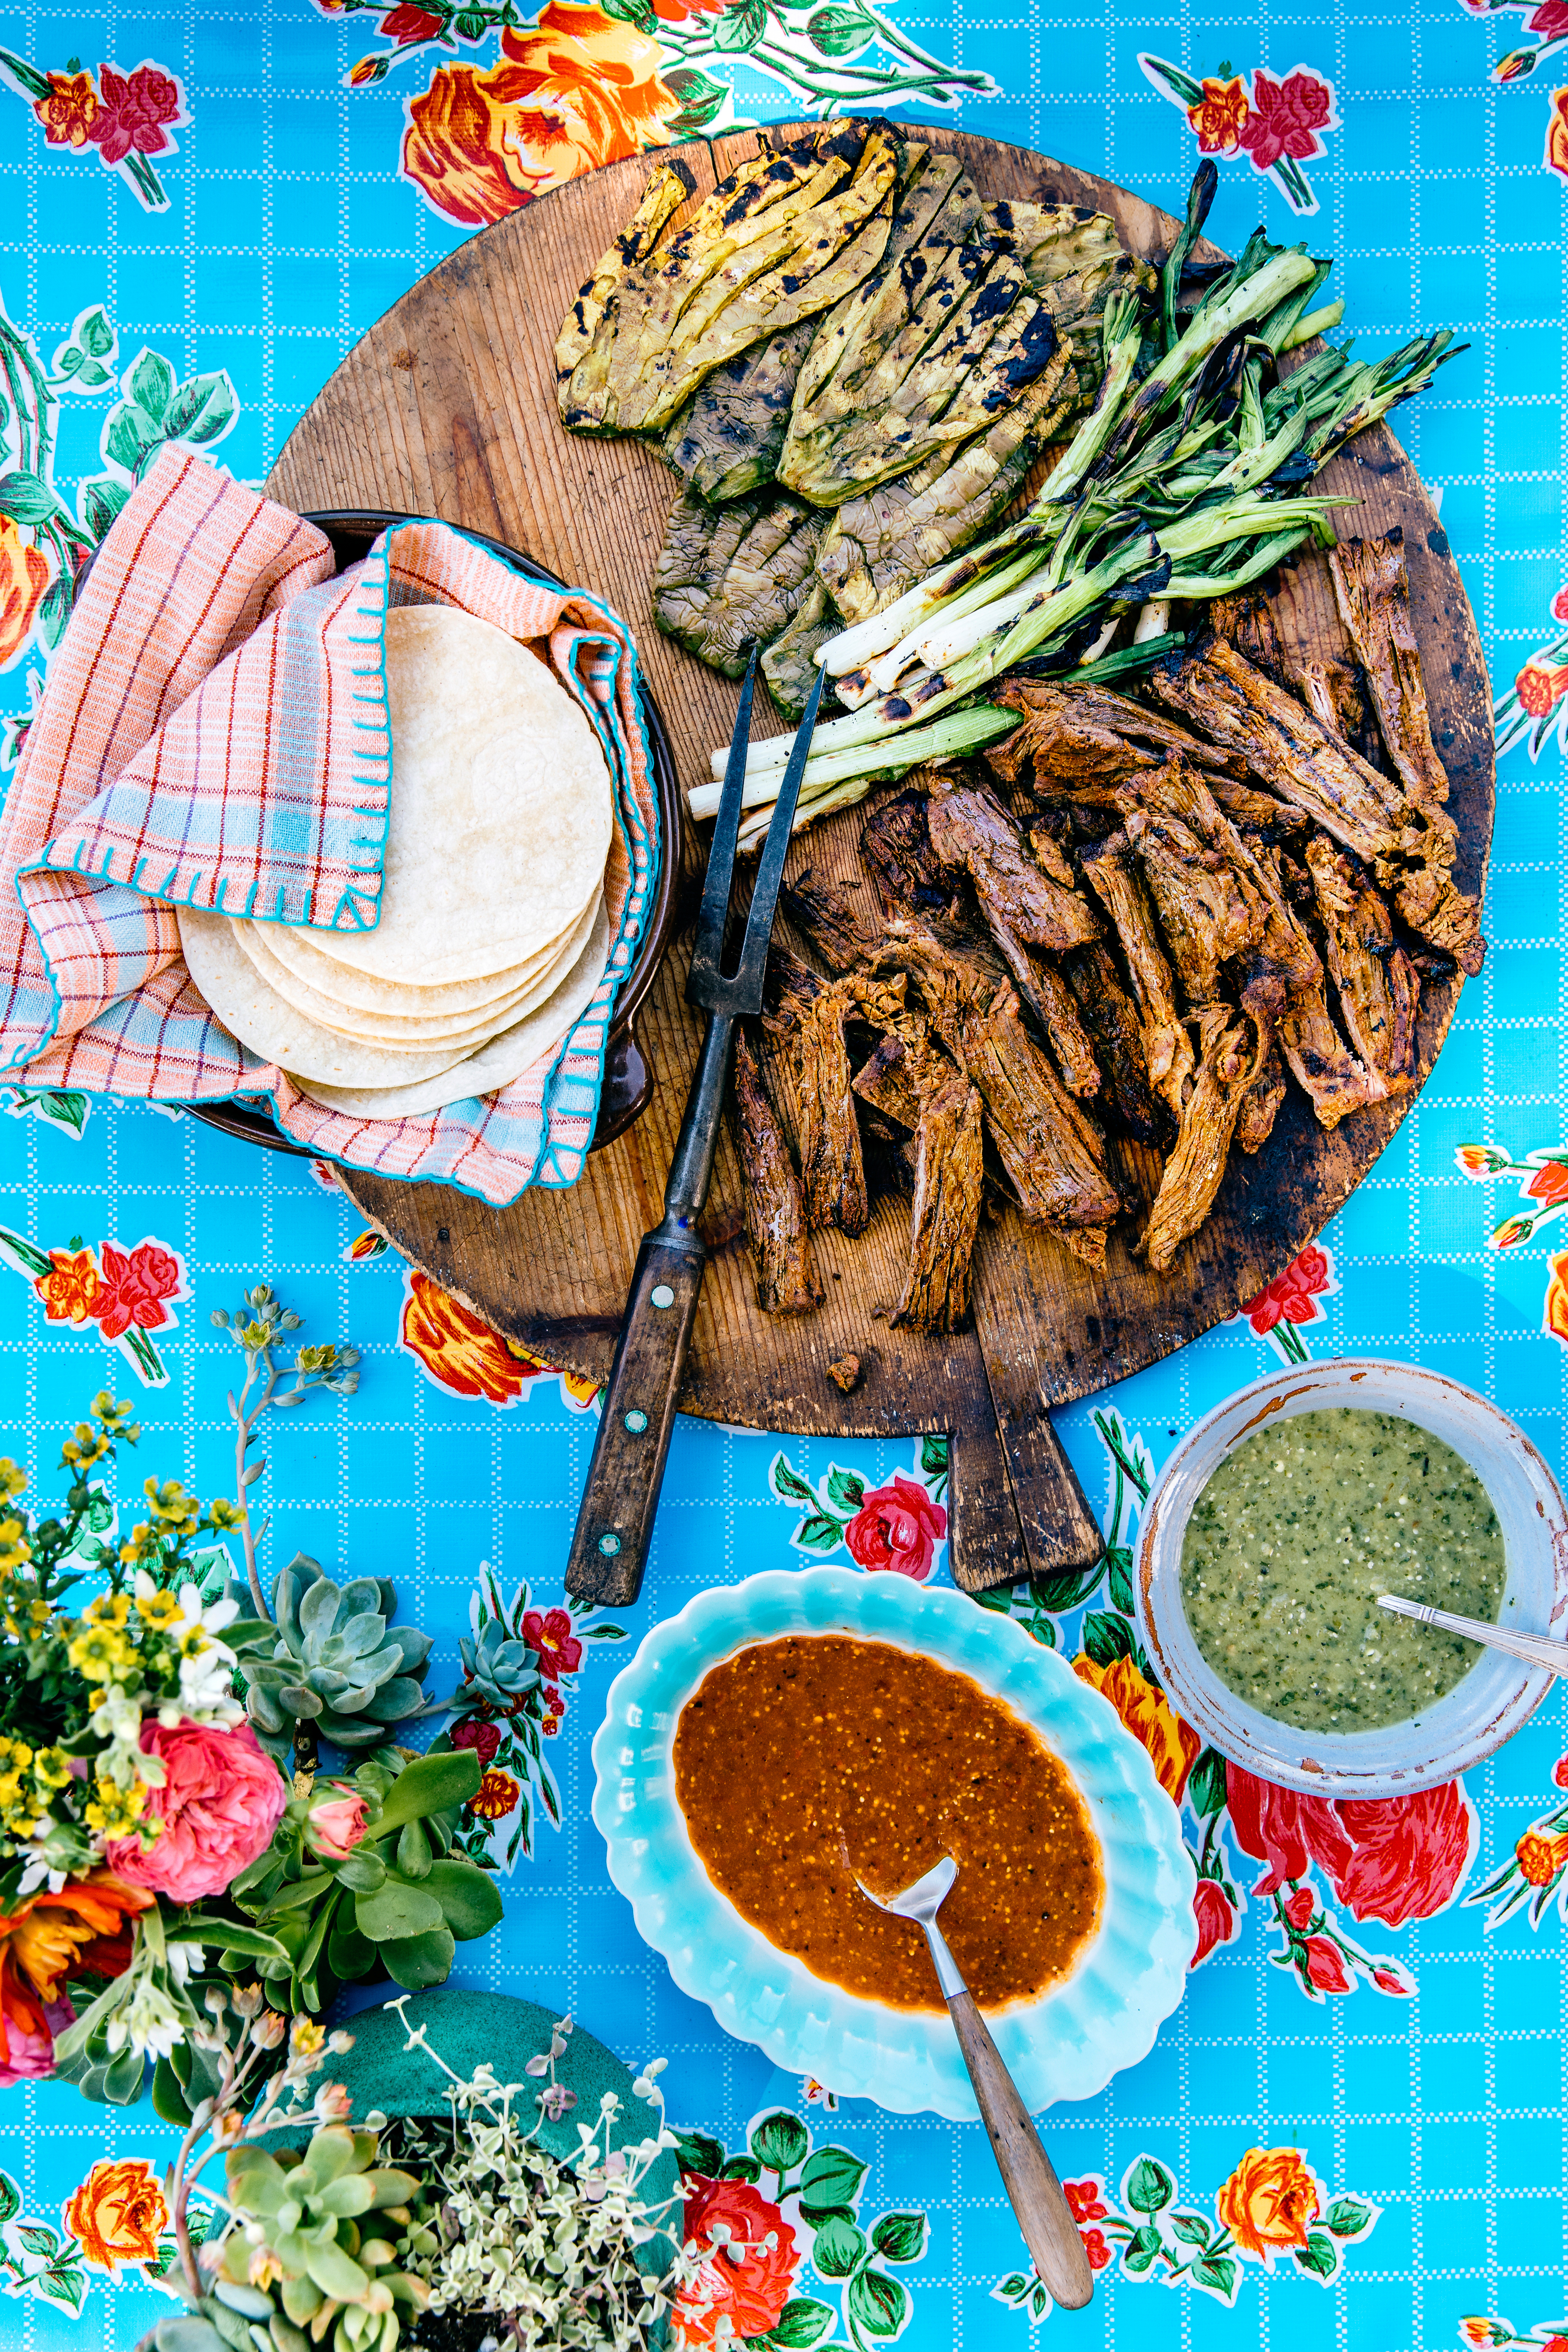 su- Carne Asada with Nopales and Green Onions